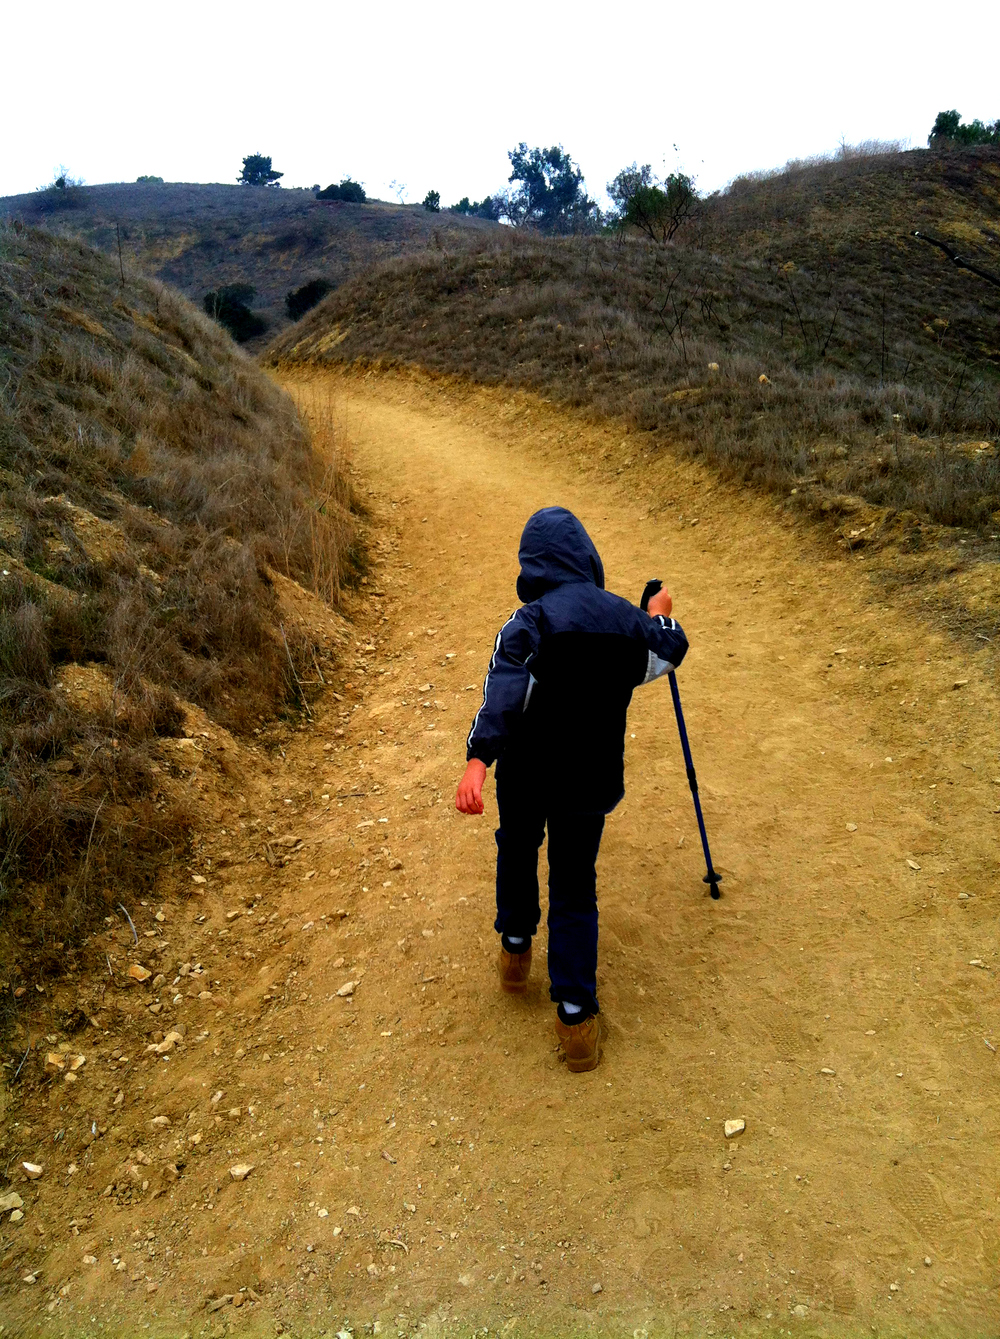 Family Hiking Trails Hiking With The Family at